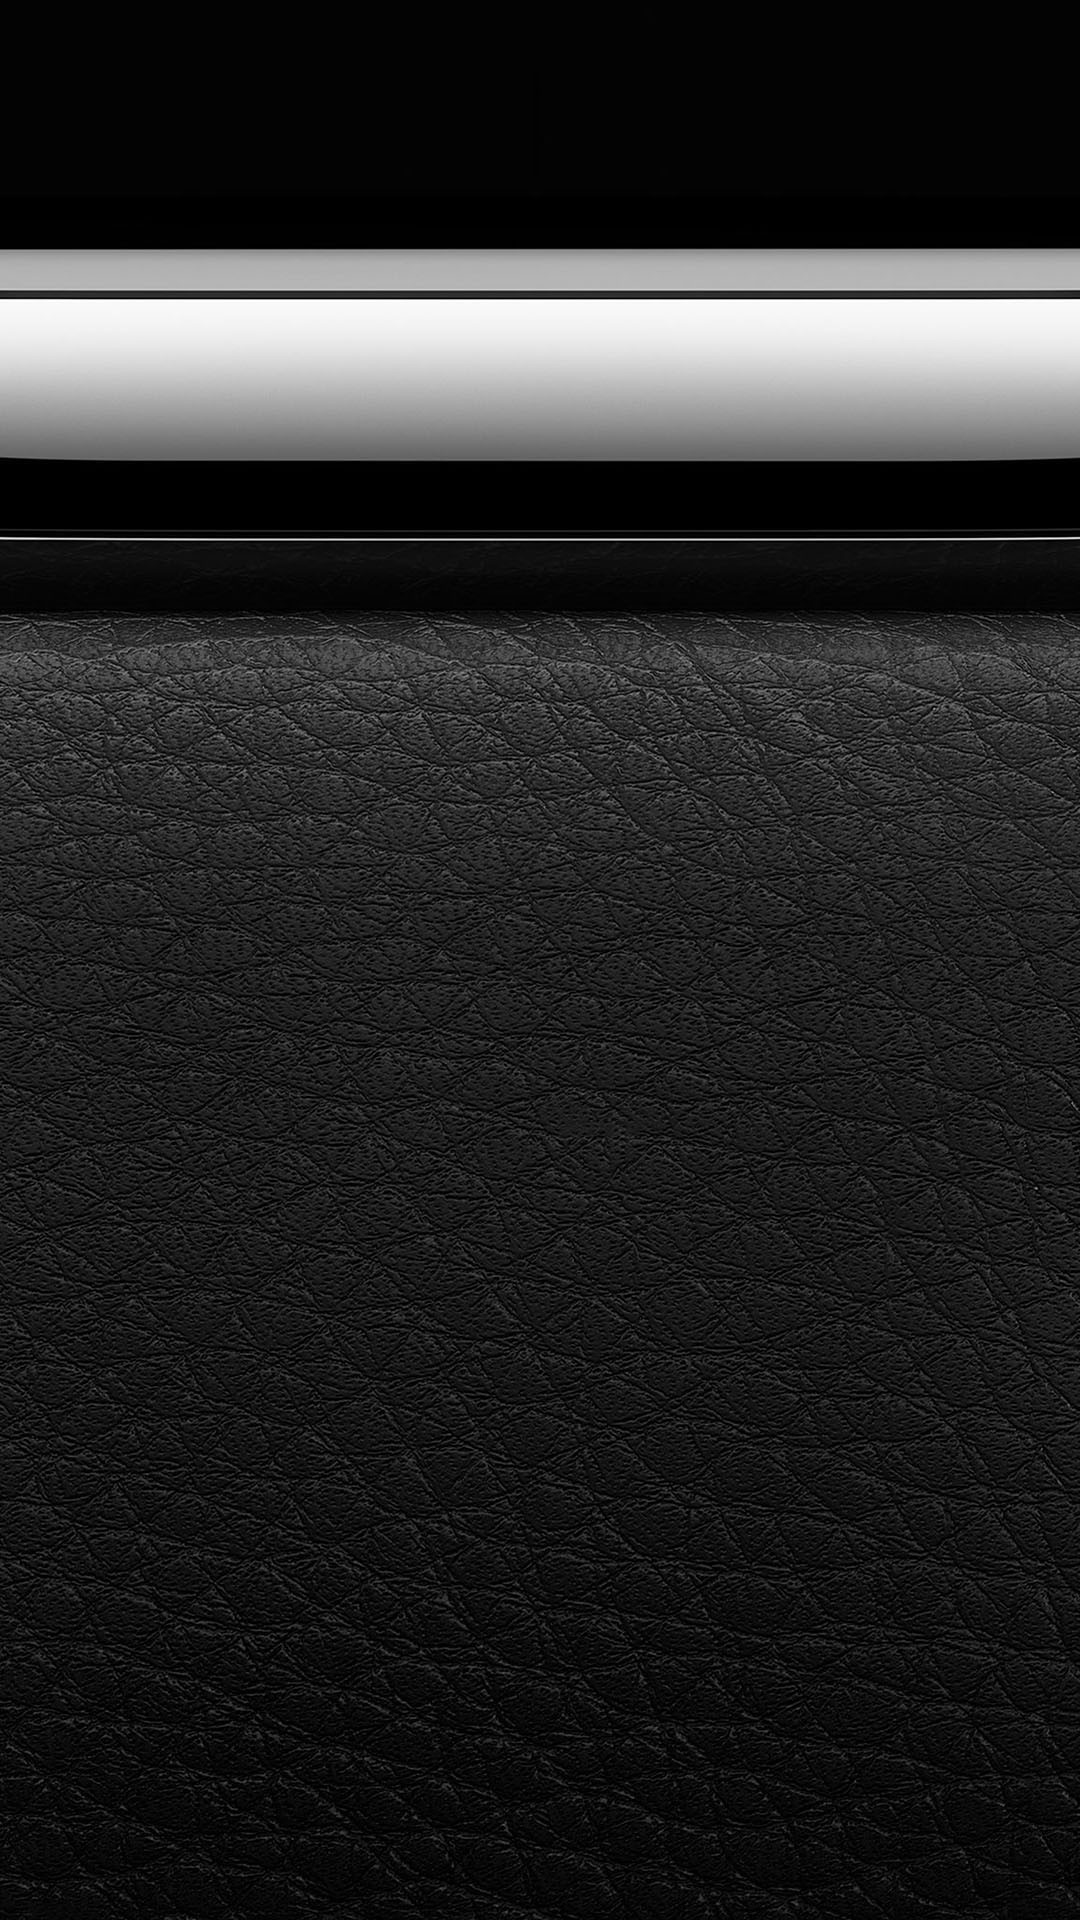 1080x1920 Apple Watch Leather Band Detail Android Wallpaper ...